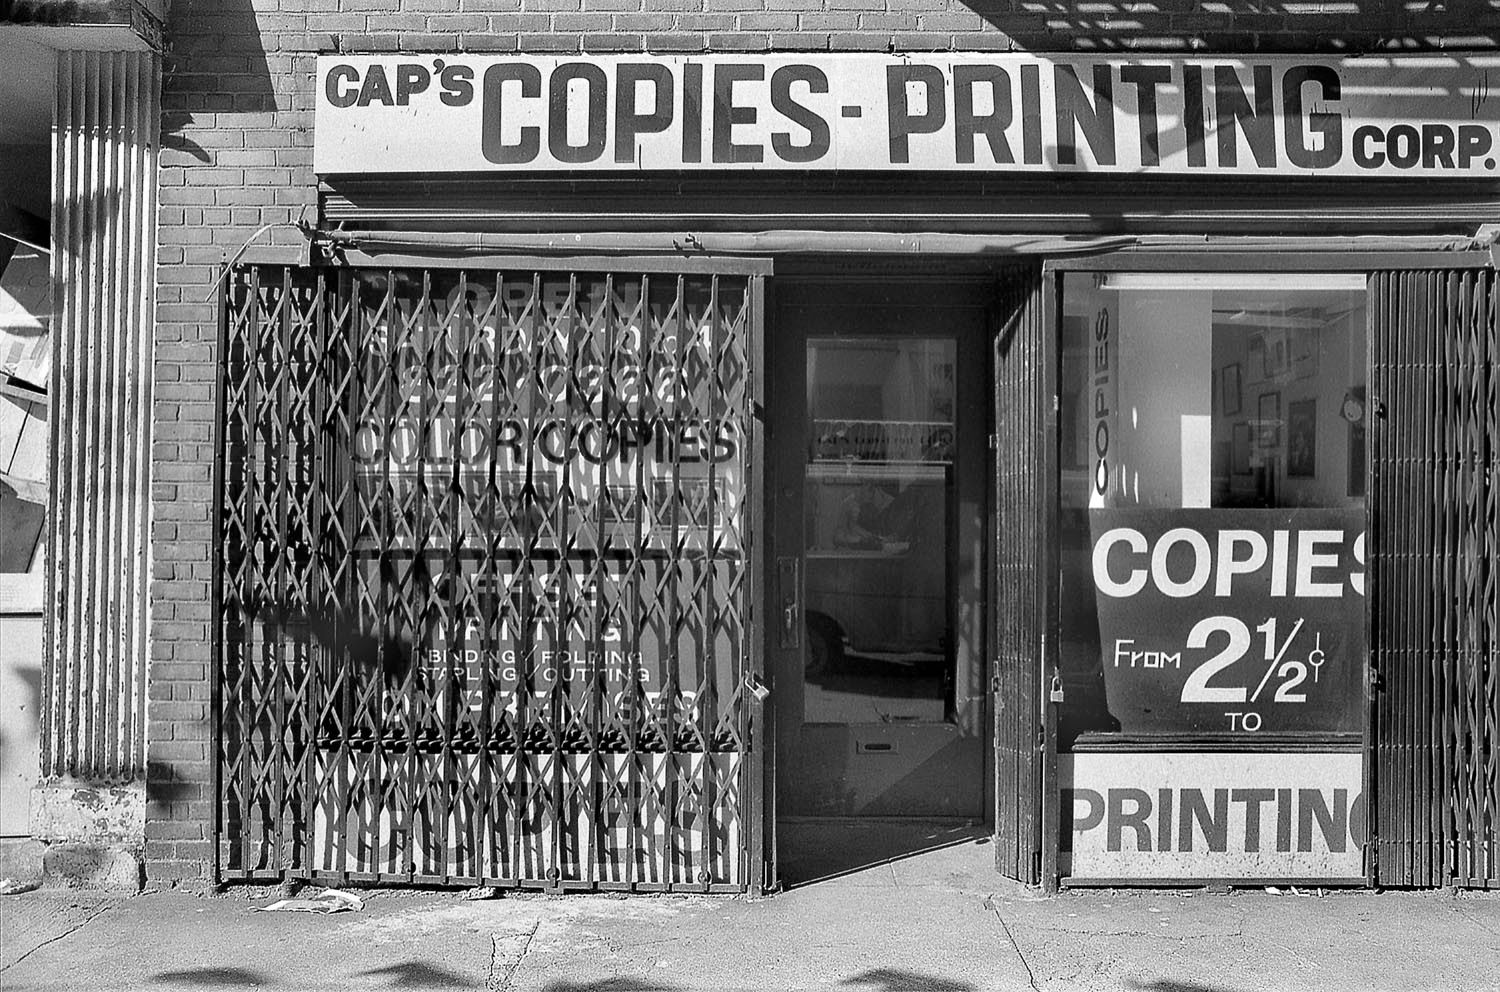 Copy and Printing Shop in NYC